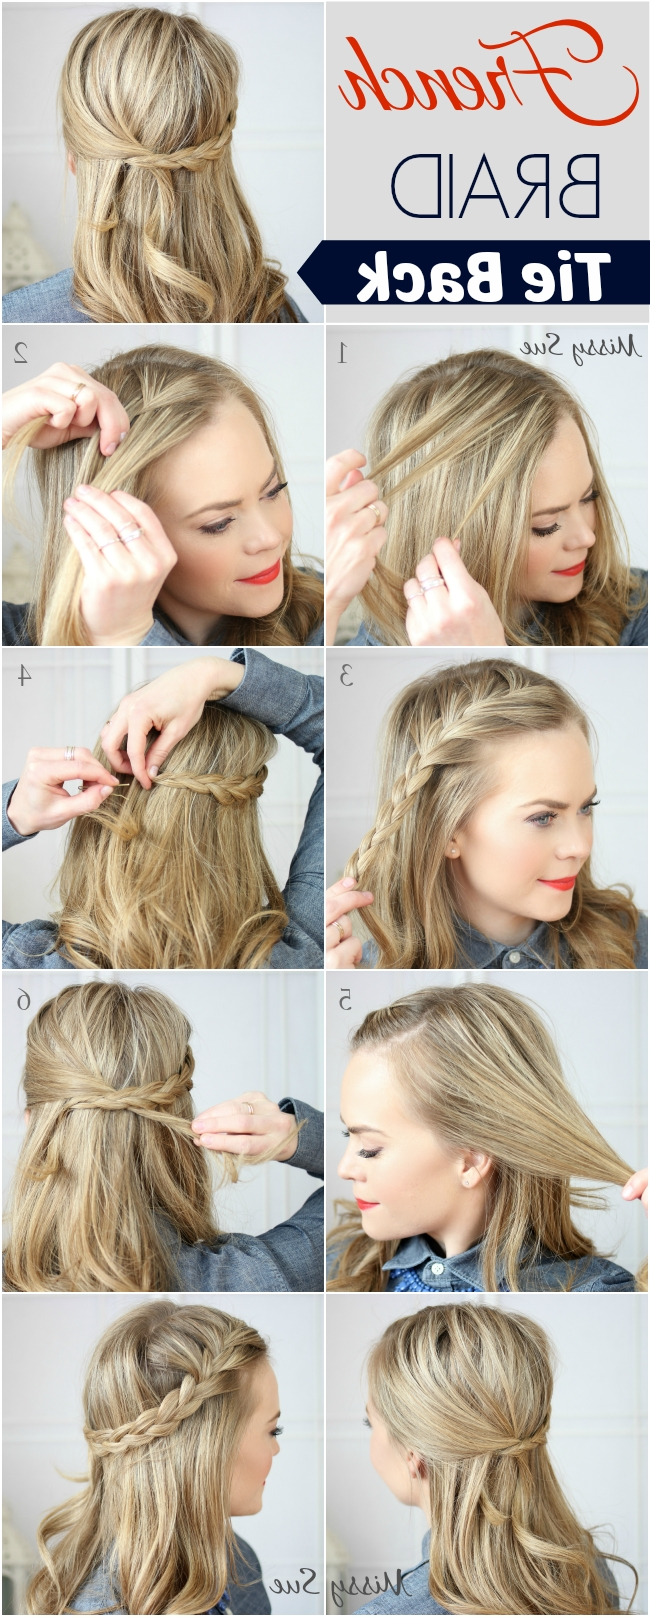 Braid 17 French Braid Tie Back Regarding Widely Used French Braid Pull Back Hairstyles (View 11 of 15)